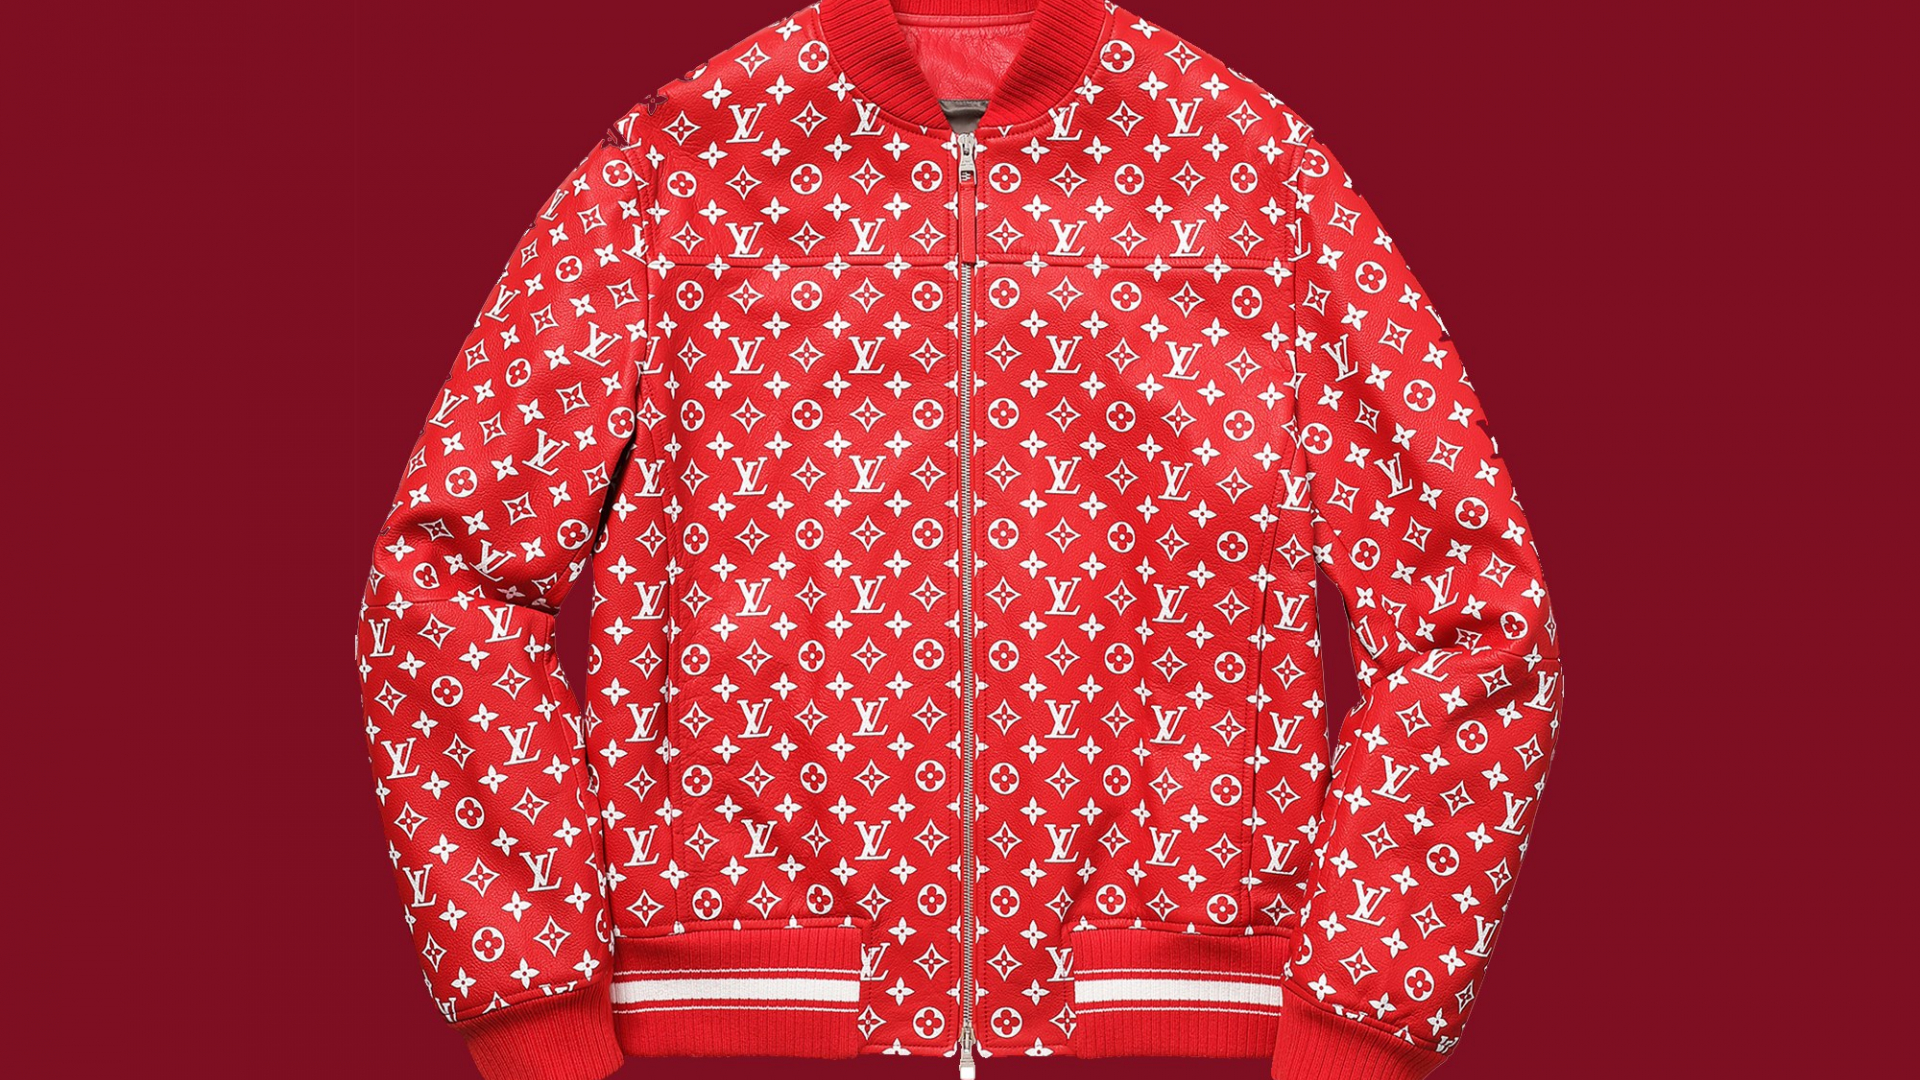 Free Download Lv X Supreme Patterns Patterns Kid 2000x1333 For